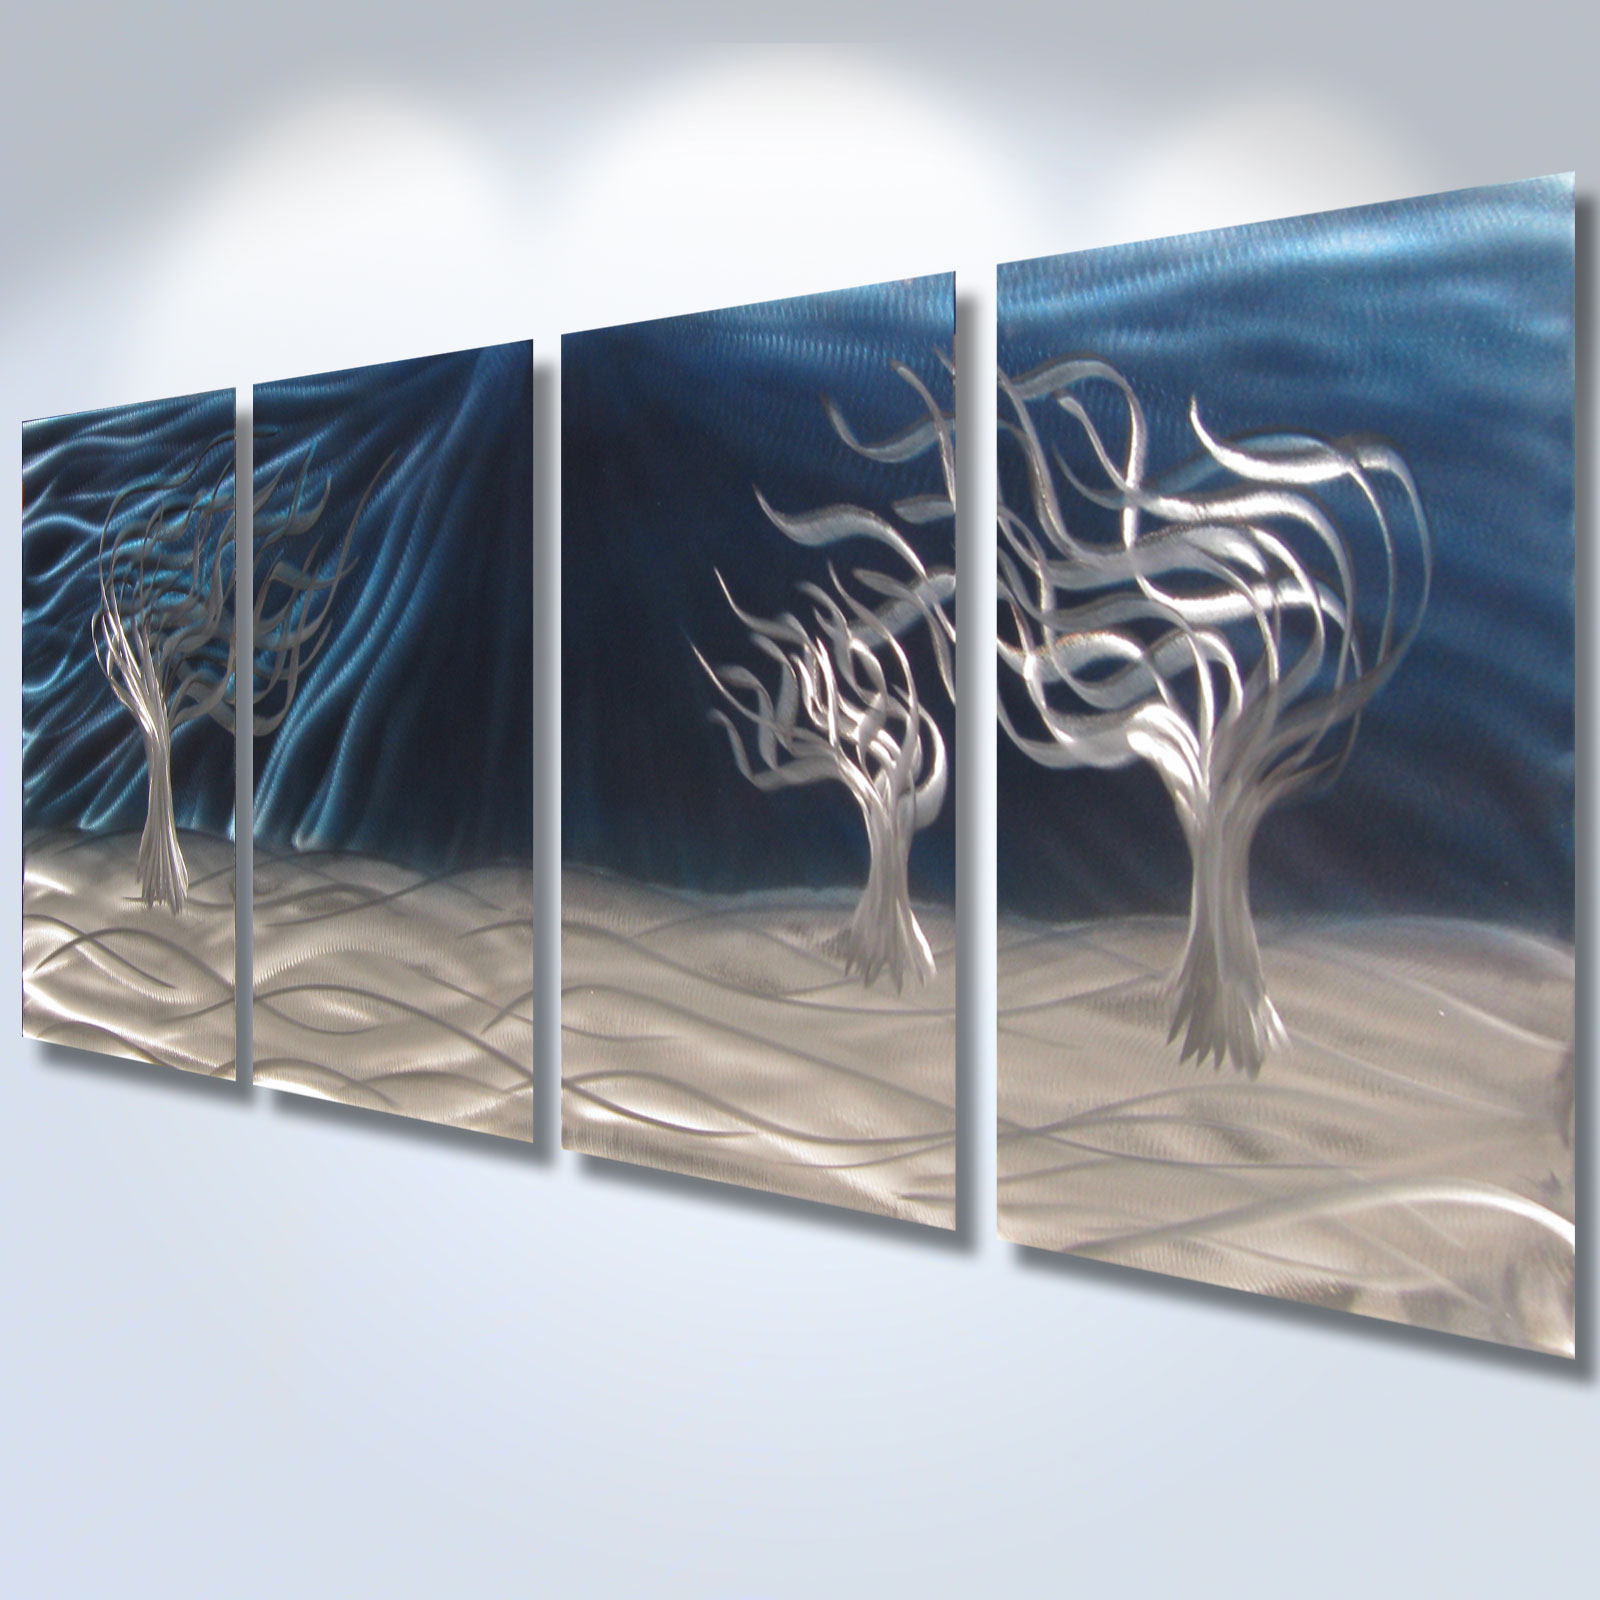 Blue Metal Wall Decor Mesmerizing 3 Trees Blue  Abstract Metal Wall Art Contemporary Modern Decor Design Ideas